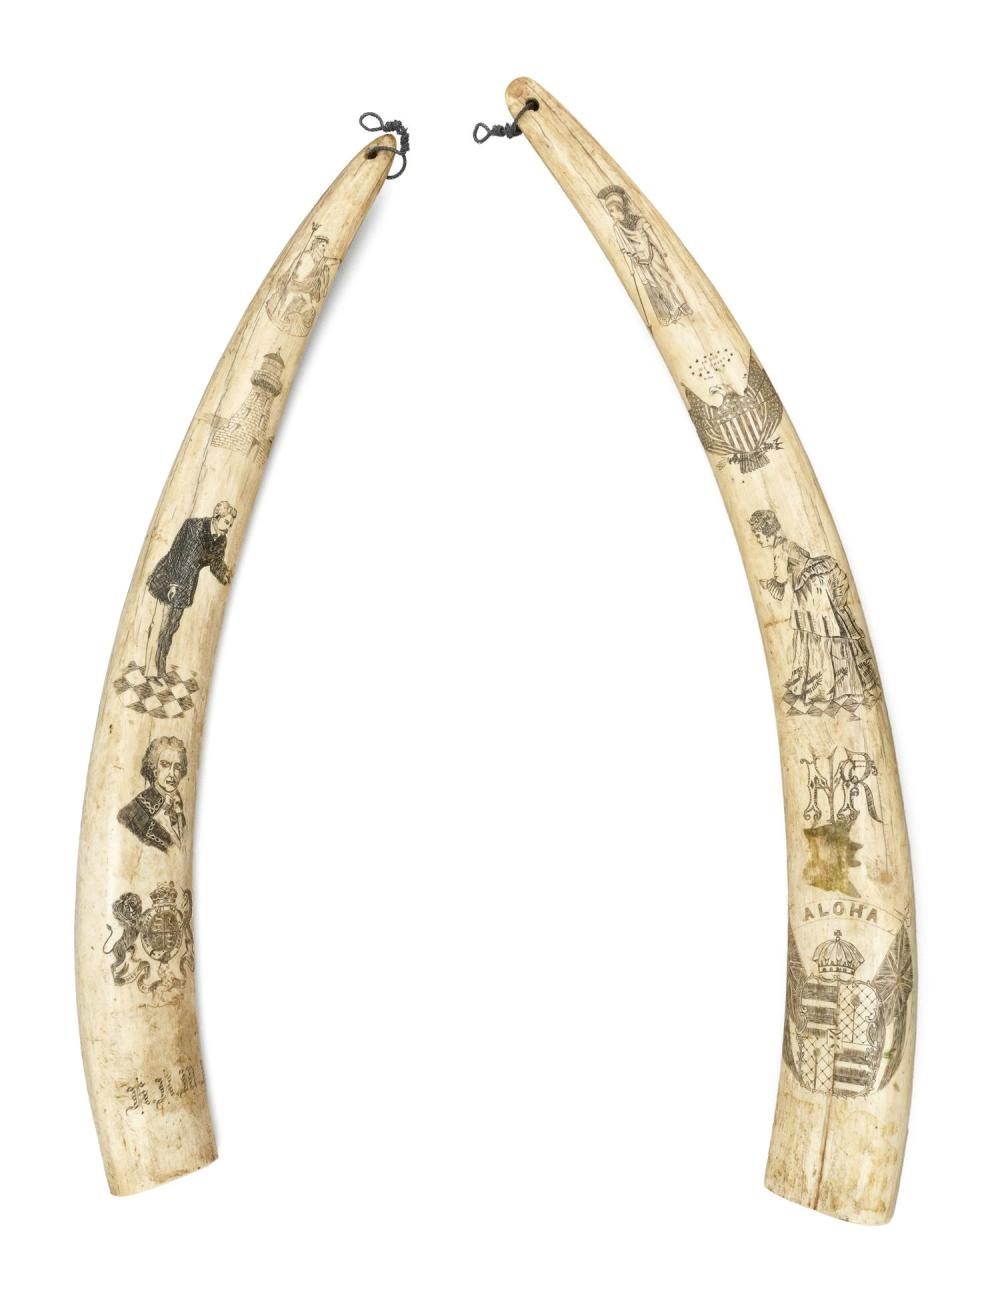 PAIR OF SCRIMSHAW WALRUS TUSKS WITH HAWAIIAN, AMERICAN AND BRITISH MOTIFS An intriguing compilation of images, including Poseidon, a...